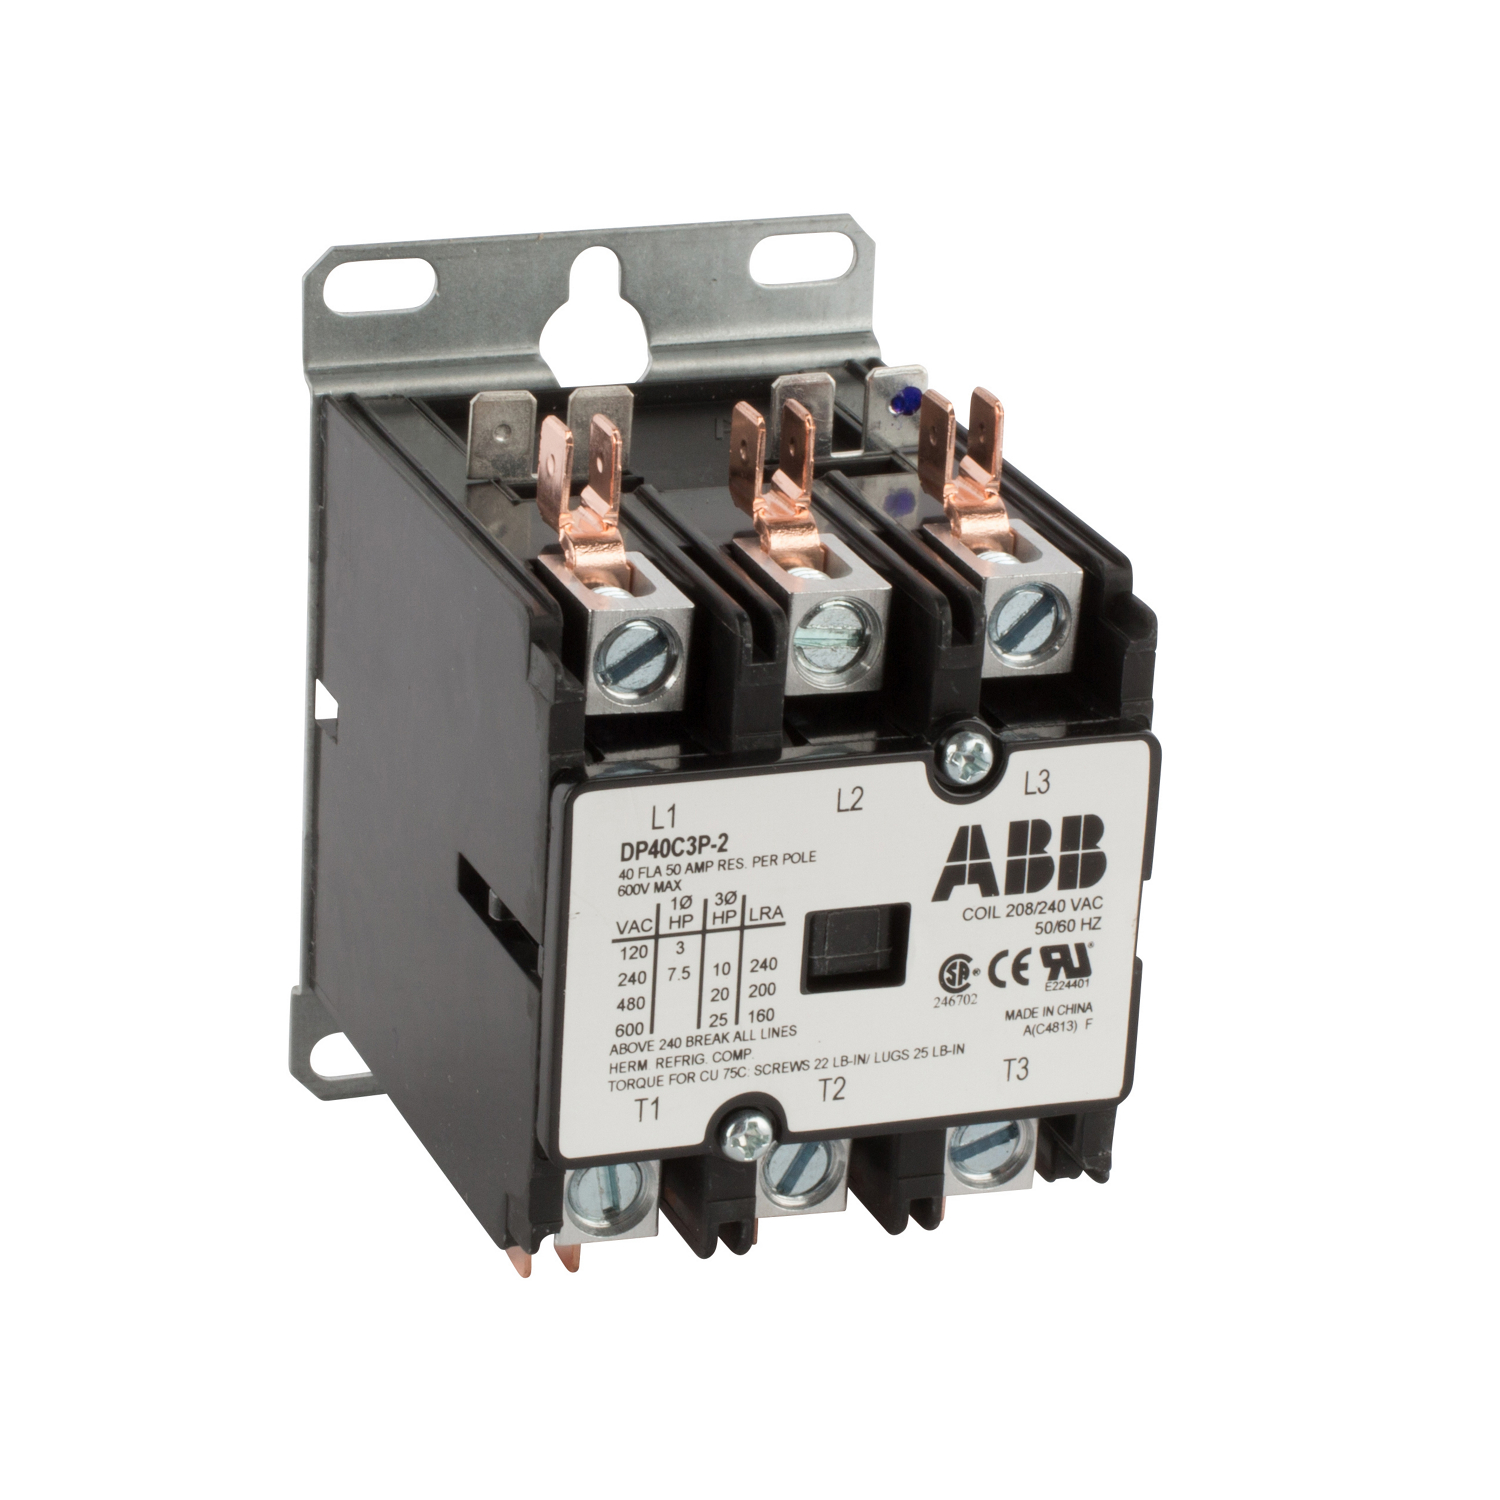 ABB DP40C3P-2 DPCONTR, 40A, 3P, 240 /208V 40 Amp, 3-Pole, Definite Purpose Contactor, 600V Rated, Screw Terminals, 208/240V AC Coil. **THESE CONTACTORS ARE NOT RECOMMENDED FOR USE ON LIGHTING CIRCUITS, IF THEY ARE USED ON LIGHTING CIRCUITS, THEY WILL NOT BE COVERED UNDER WARRANTY**